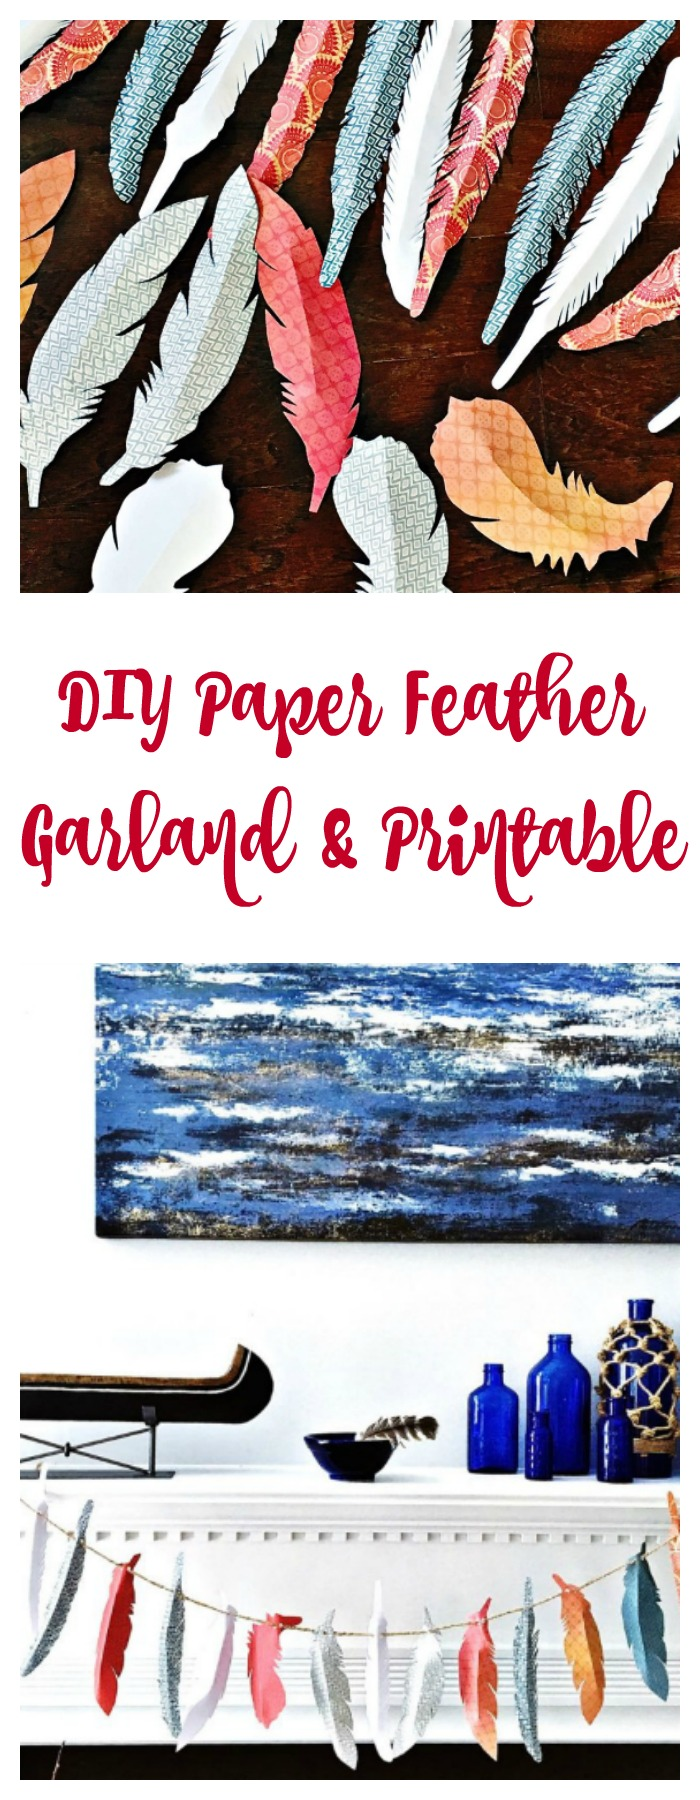 Easy feather craft for Fall. Feather garland with paper feathers.